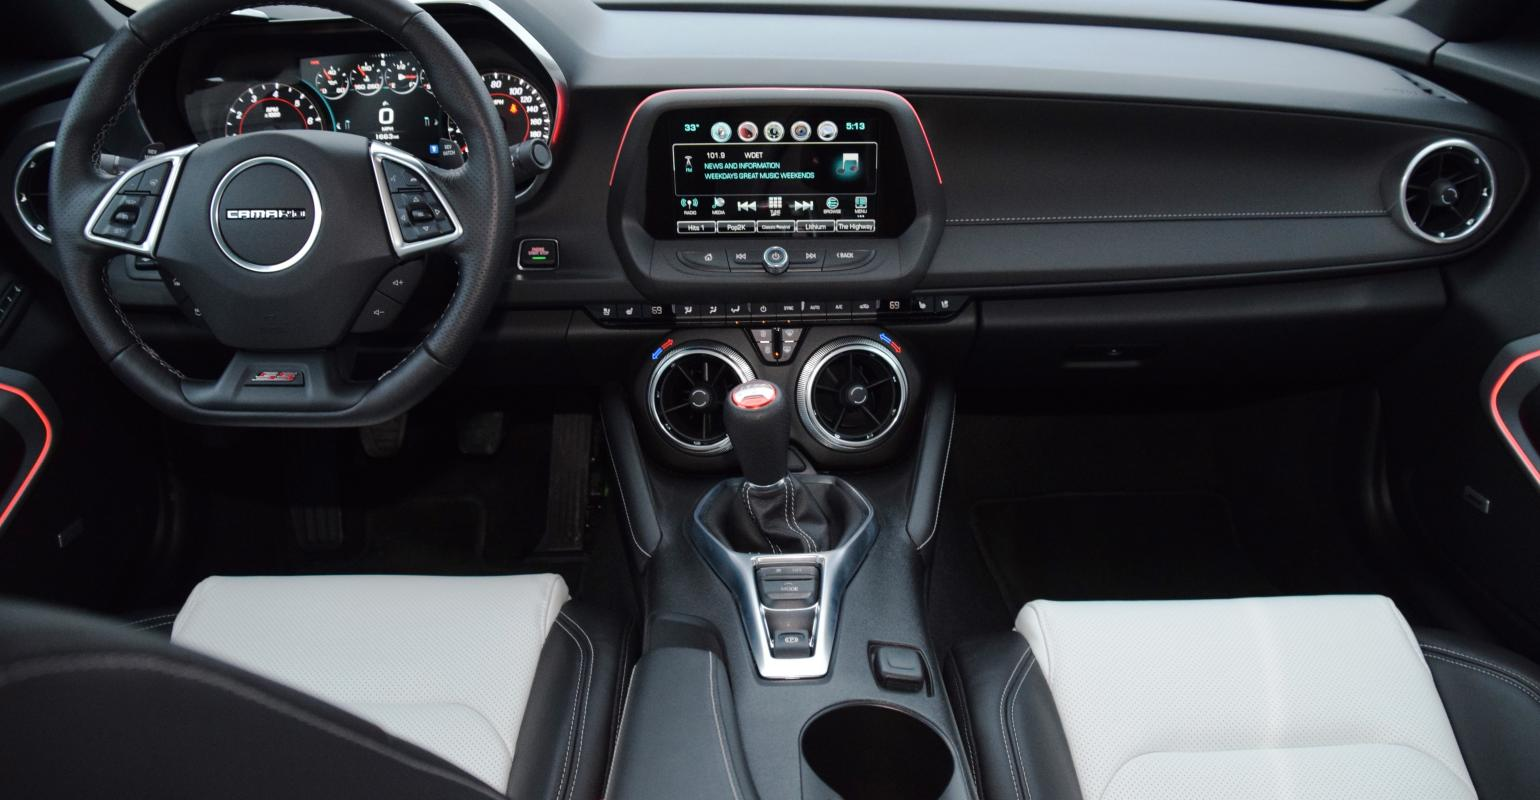 2020 Chevrolet Camaro LT1 Coupe Interior Review - Seating ...